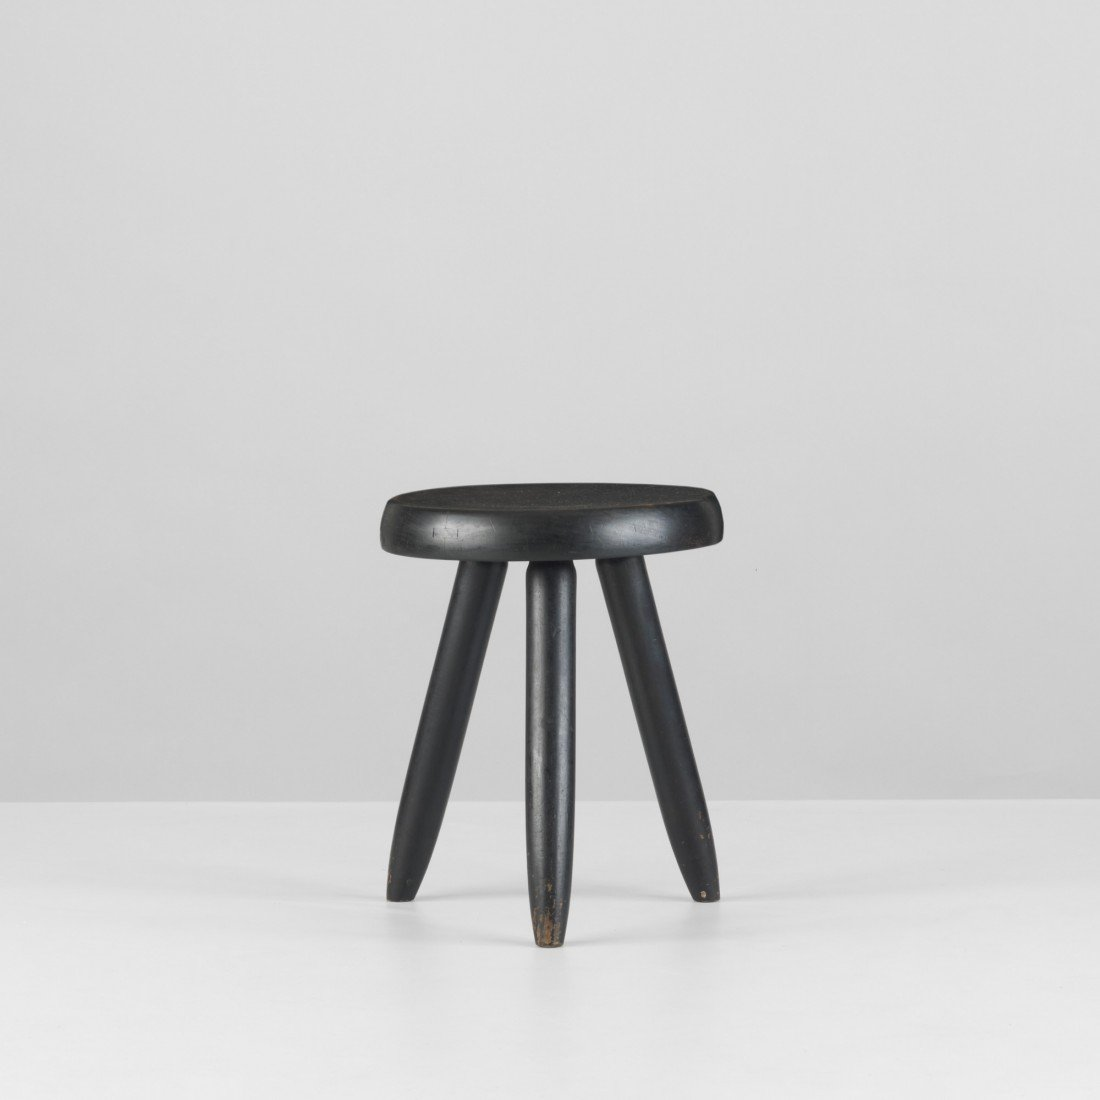 100: Charlotte Perriand stool